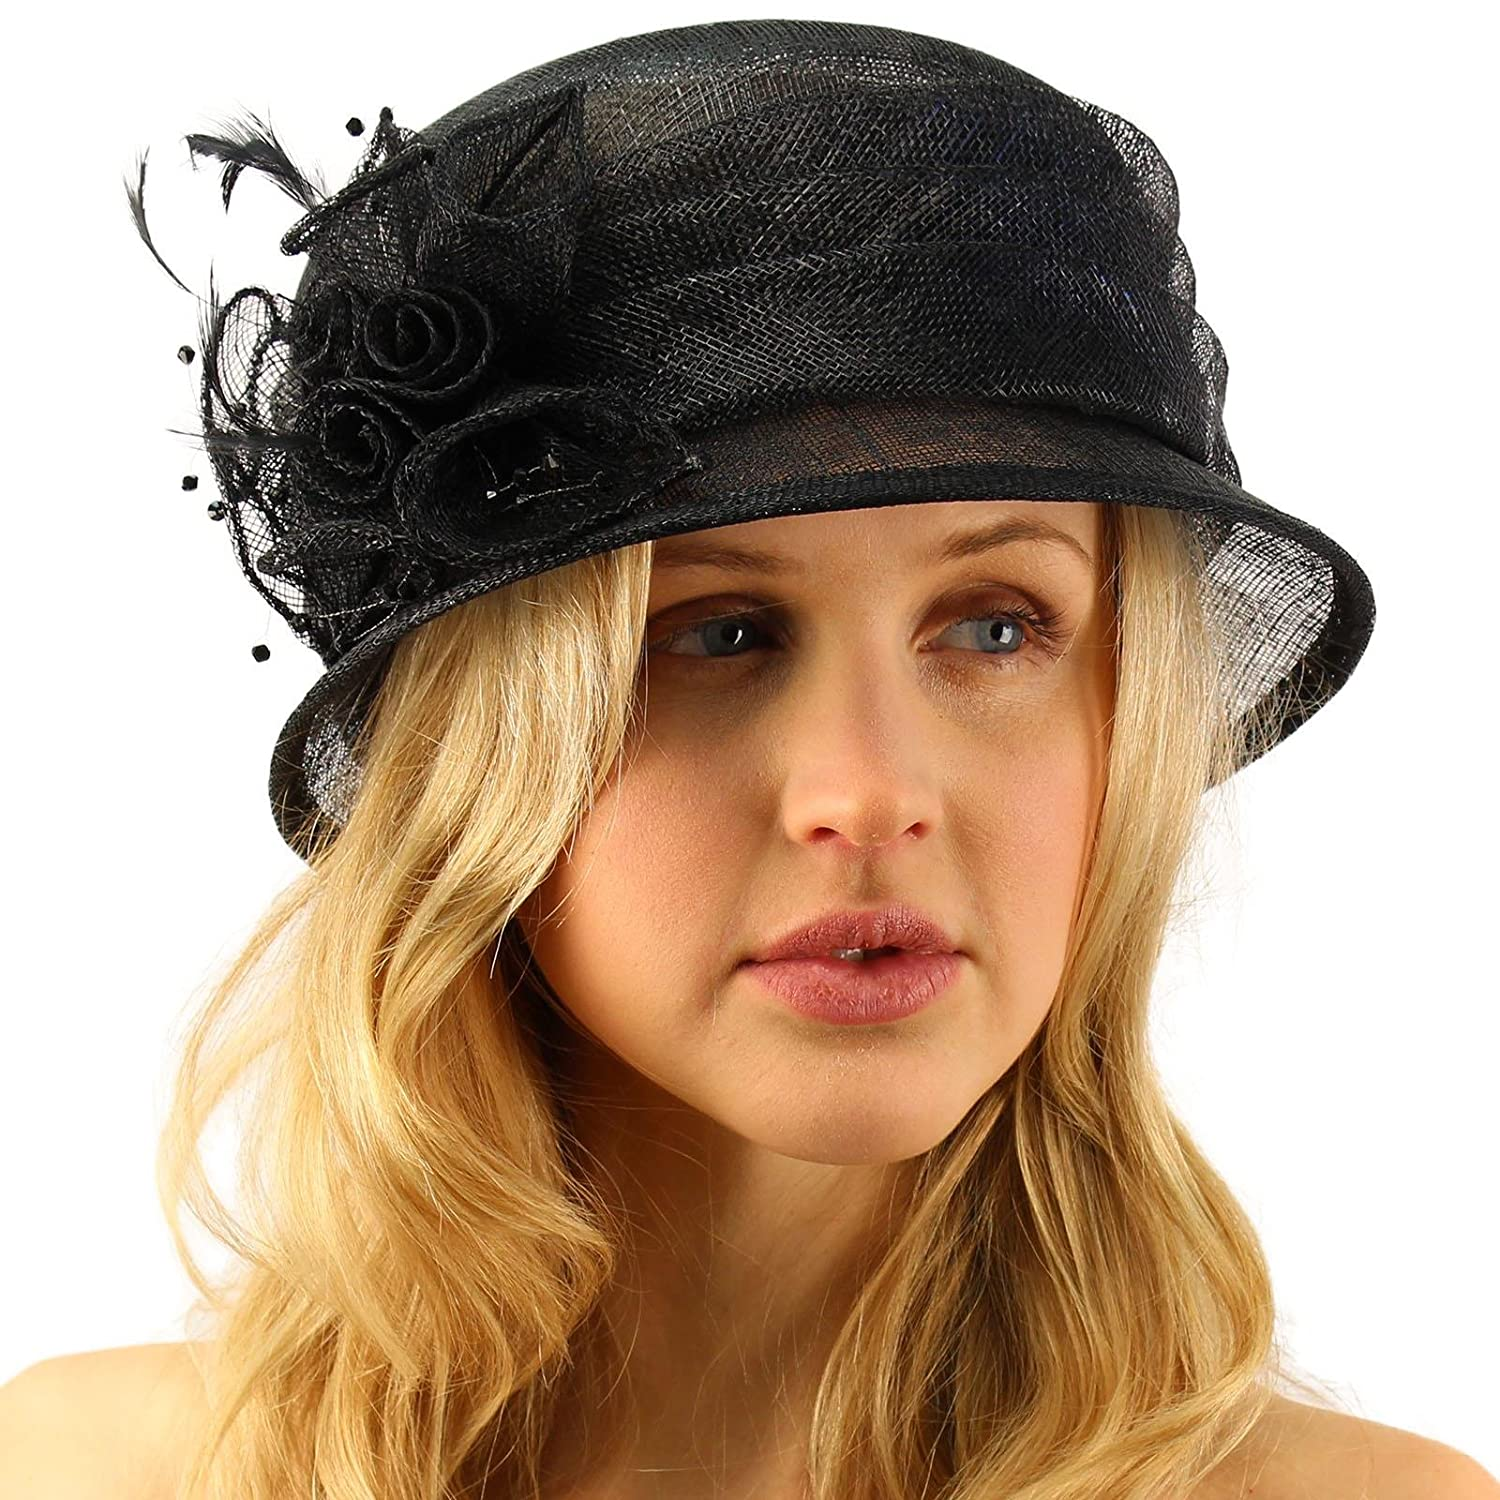 b78e9d2badc40 Summer Fancy 1920s Flapper Sinamay Trio Floral Cloche Bucket Church Hat  Black at Amazon Women s Clothing store